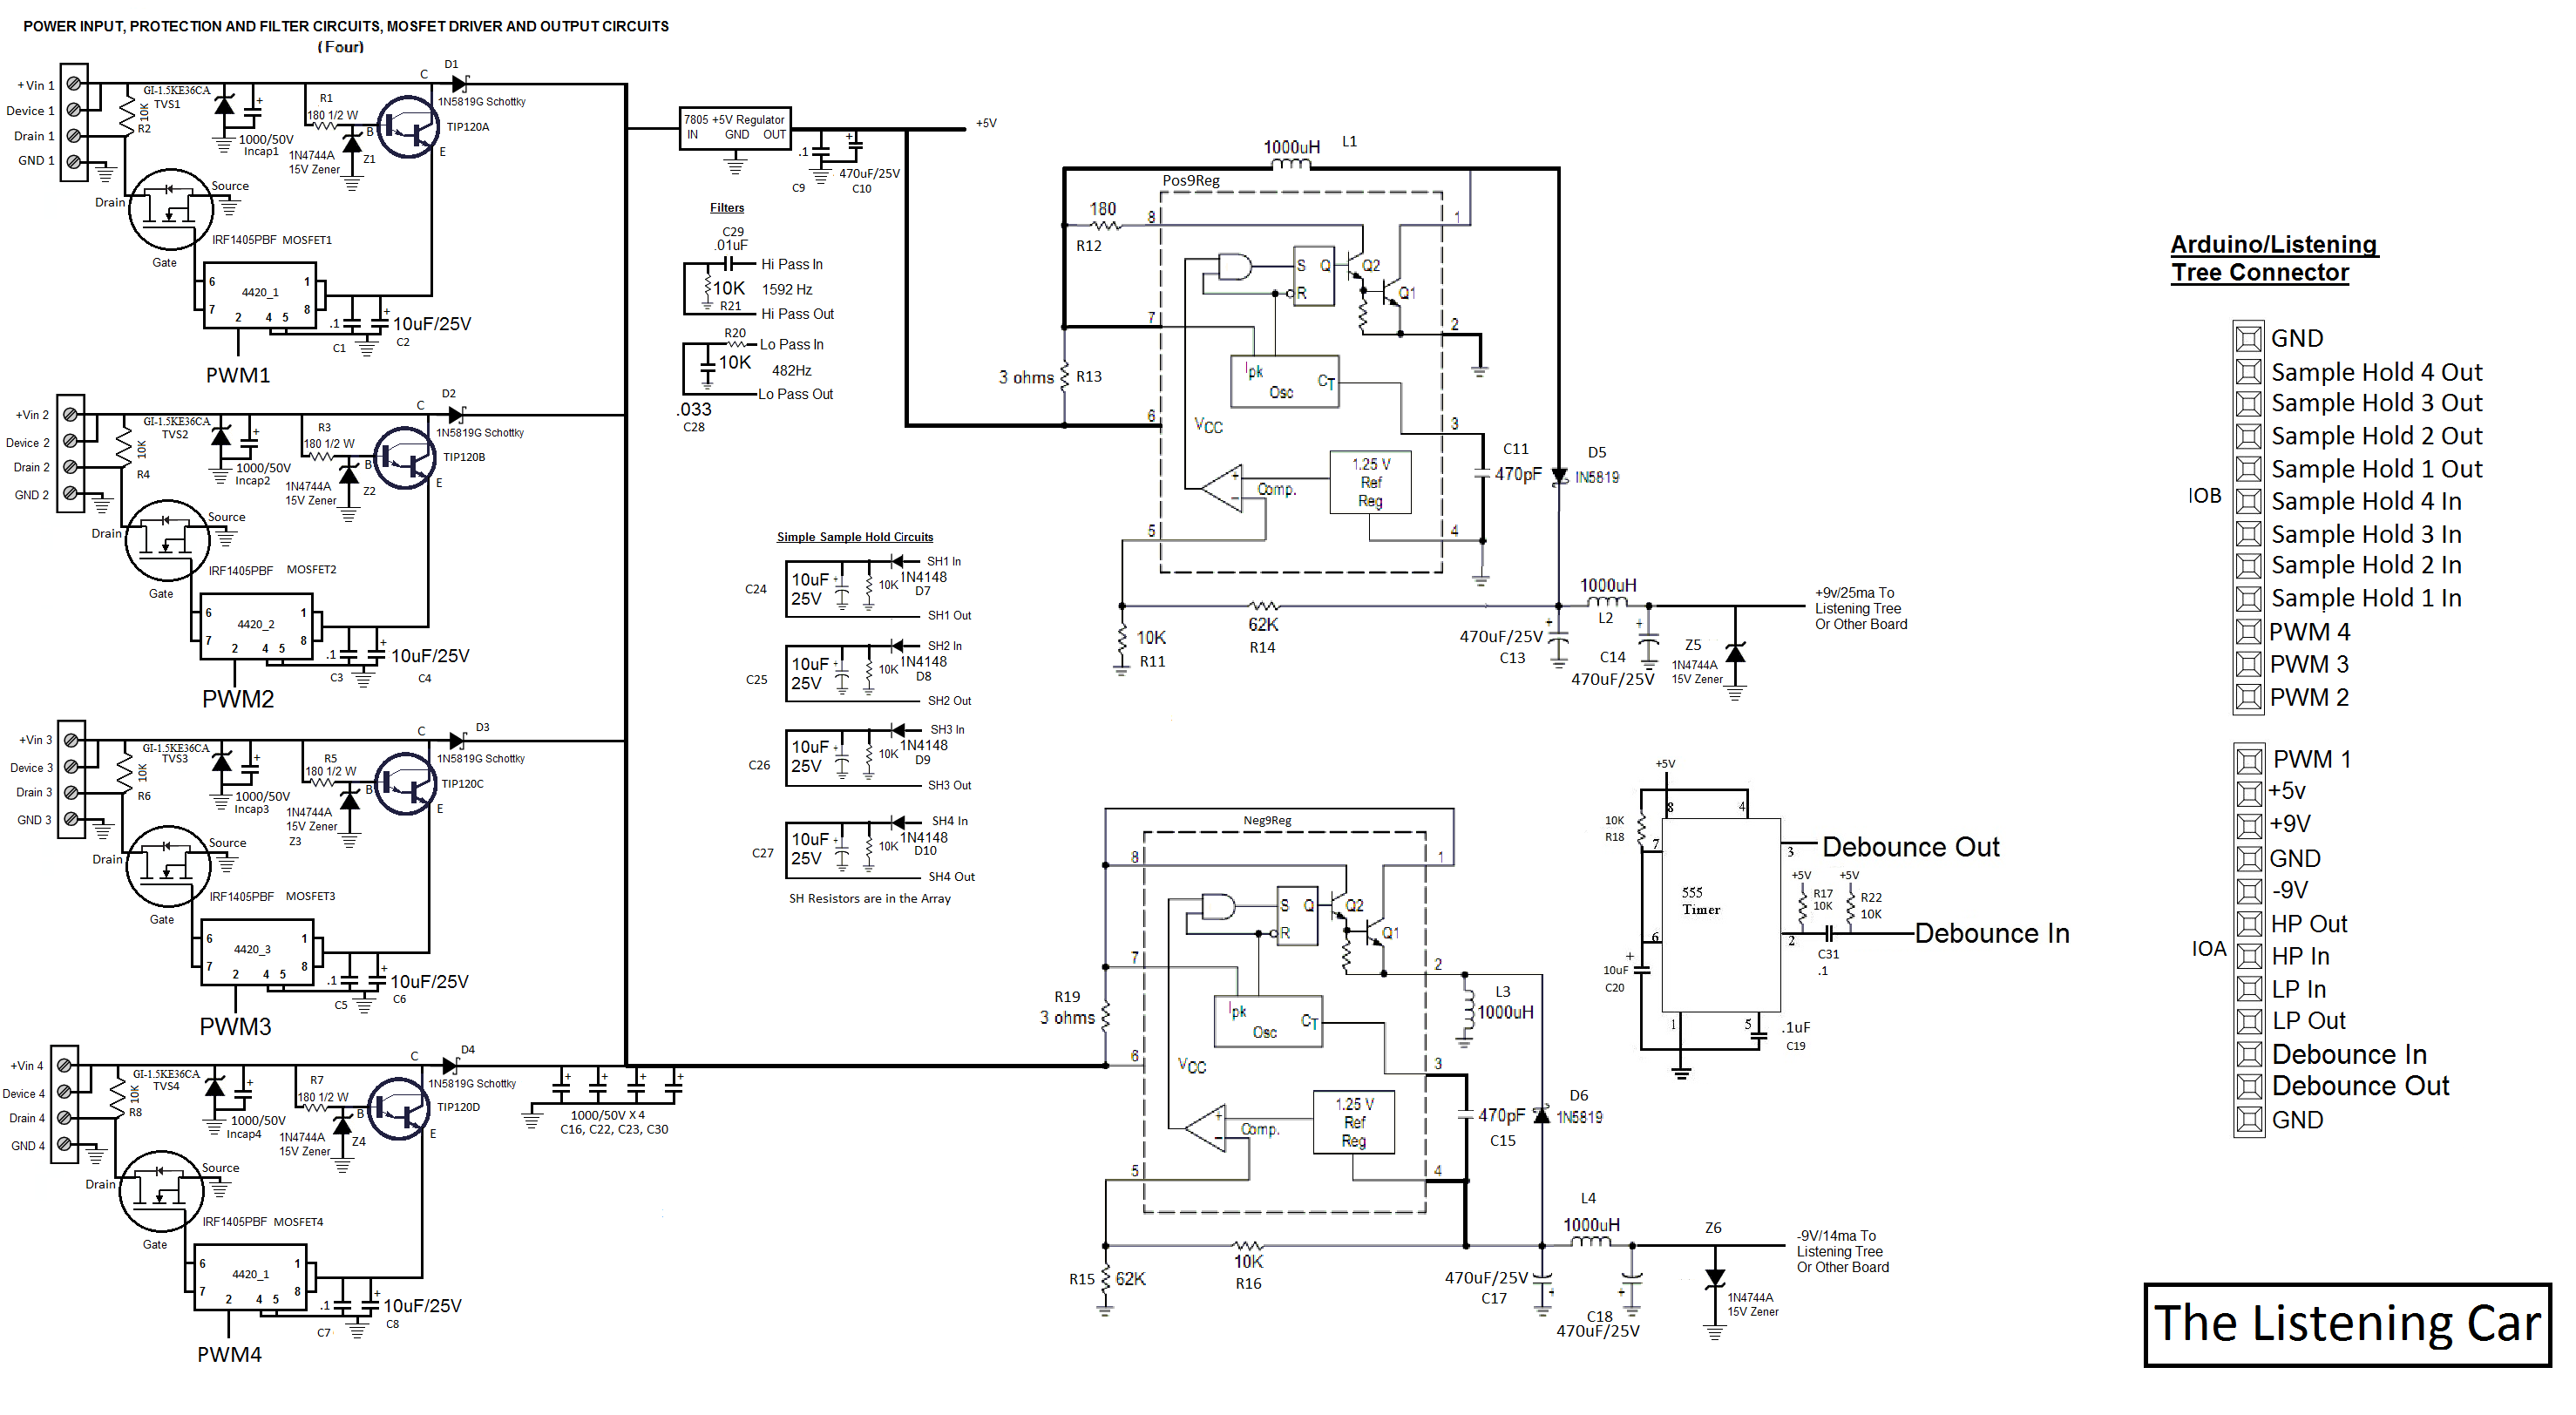 Some Ideas On Using The Listening Car Debouncing Circuit There Are Four Power Mosfet Circuits